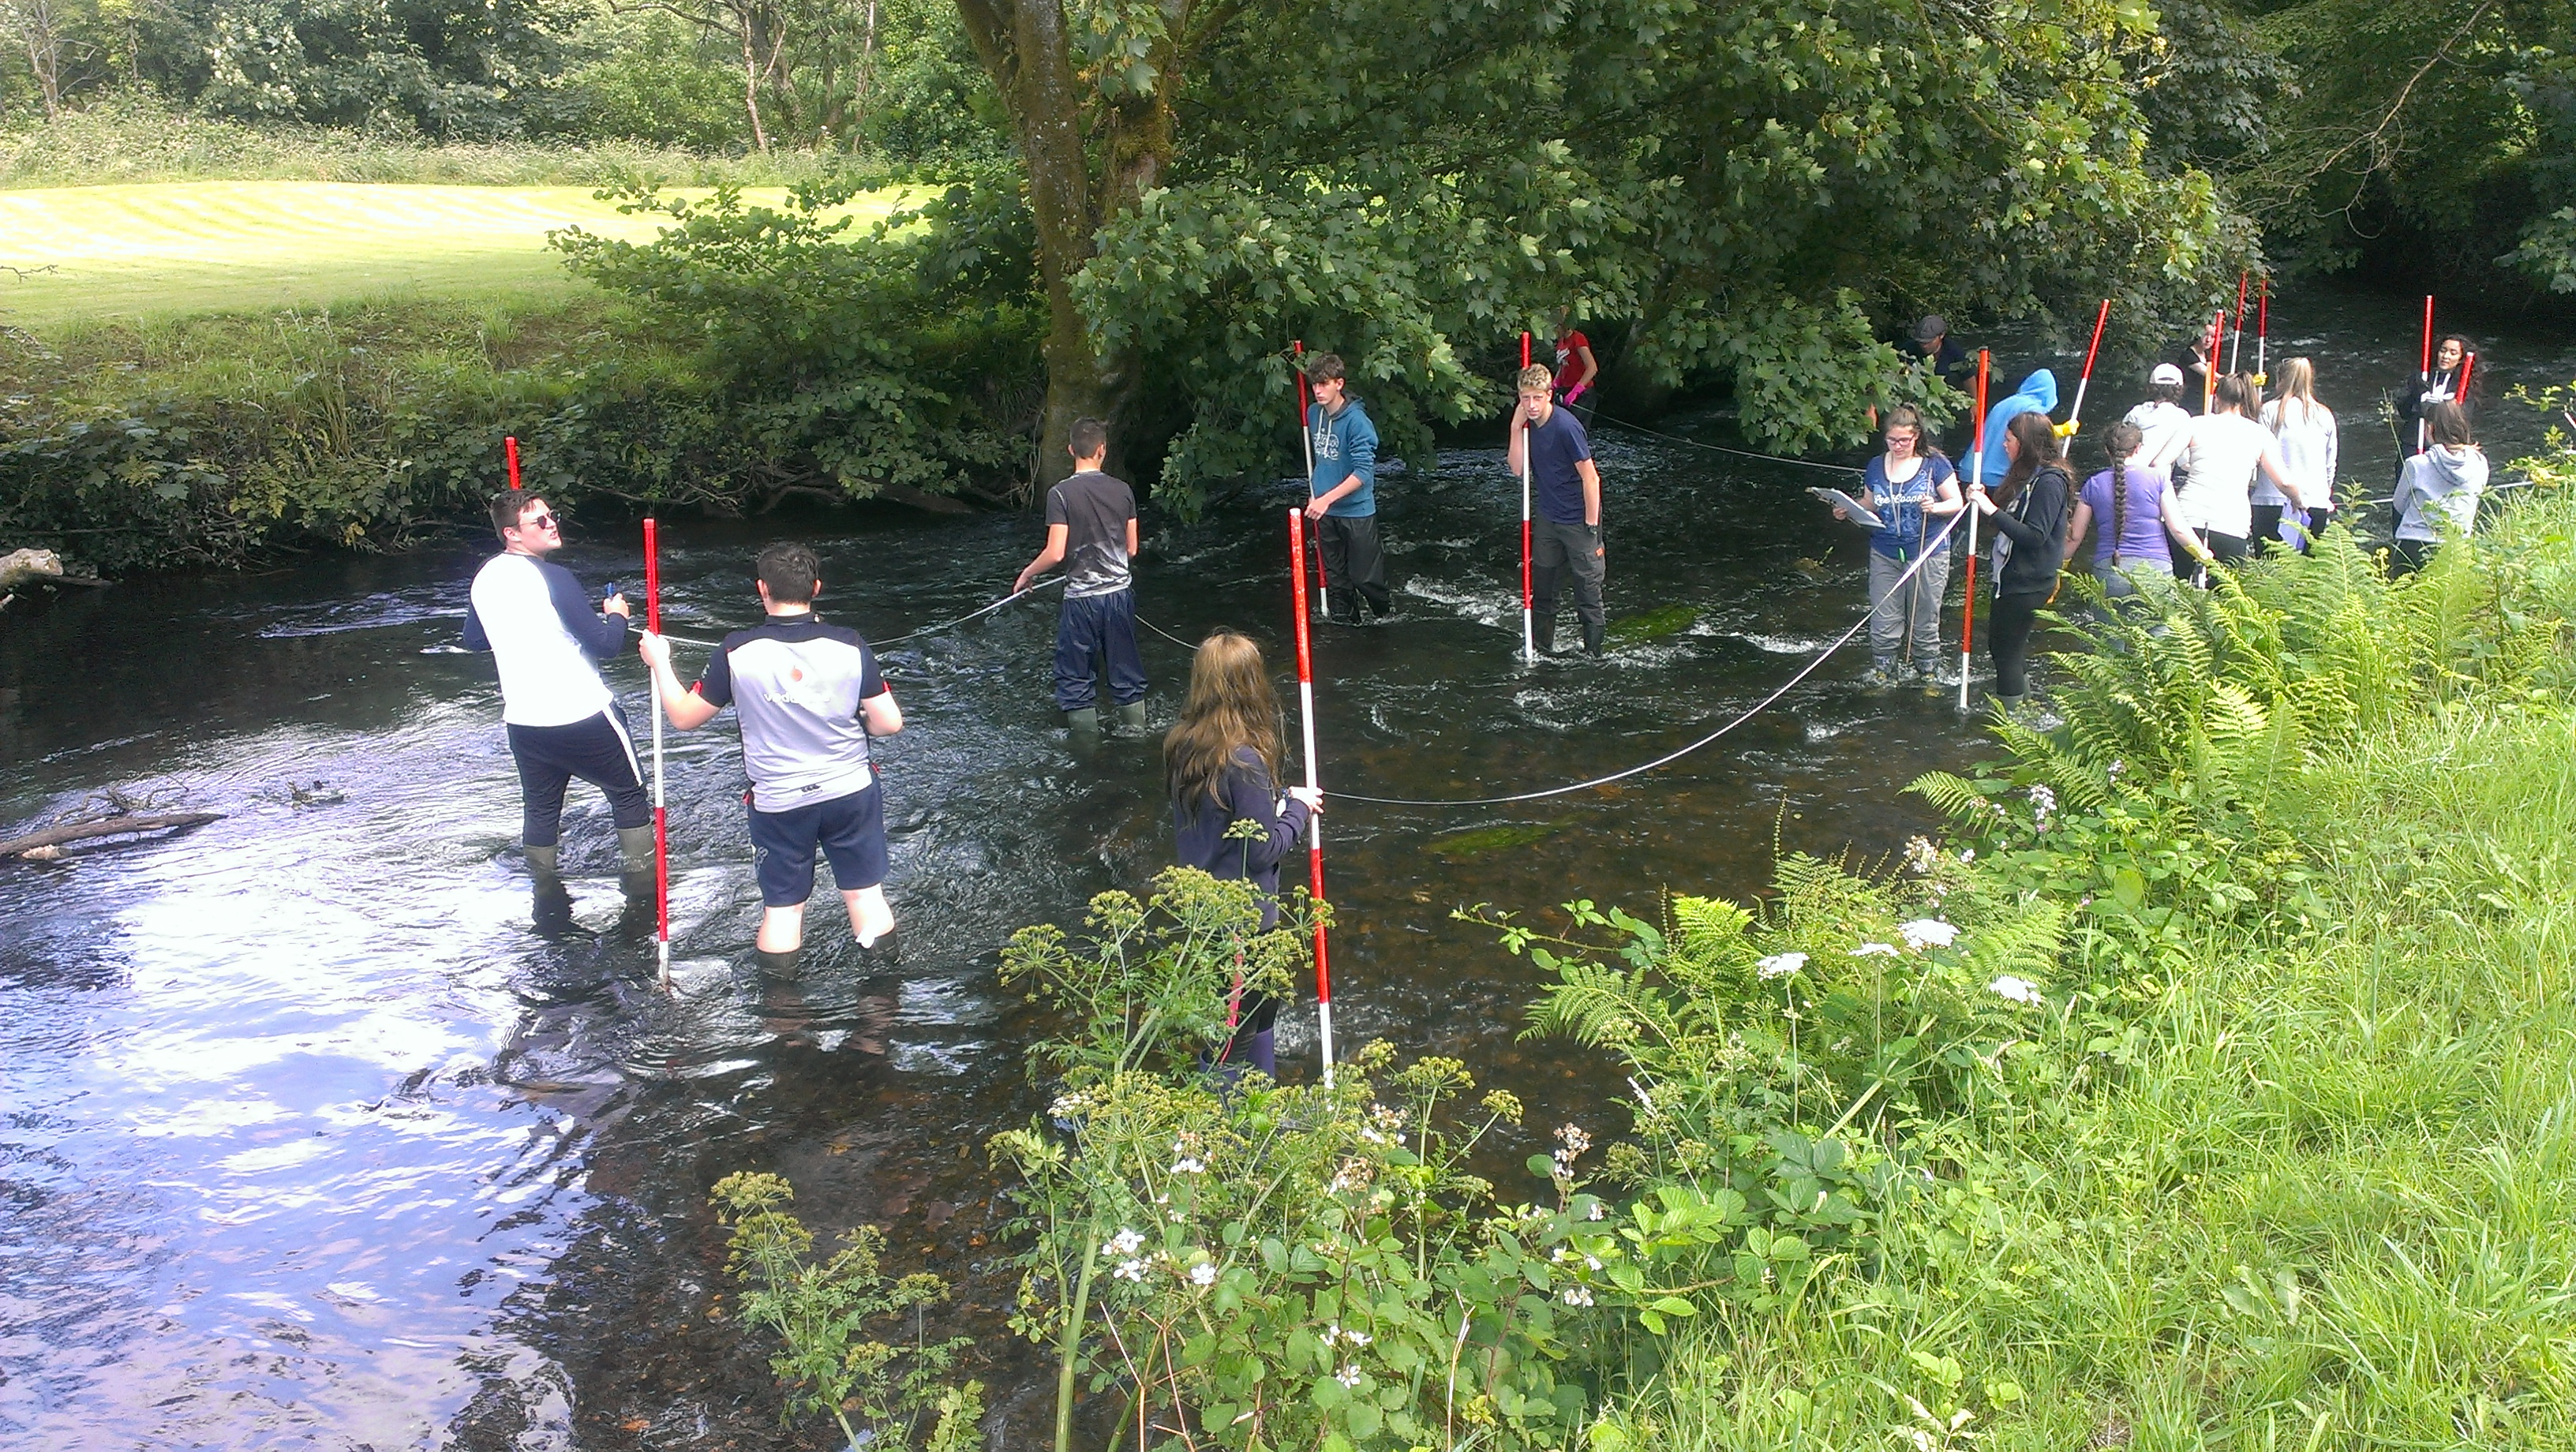 GCSE pupils measuring river channel and water flow in the Syfynwy River, Pembrokeshire Coast National Park, Wales, UK